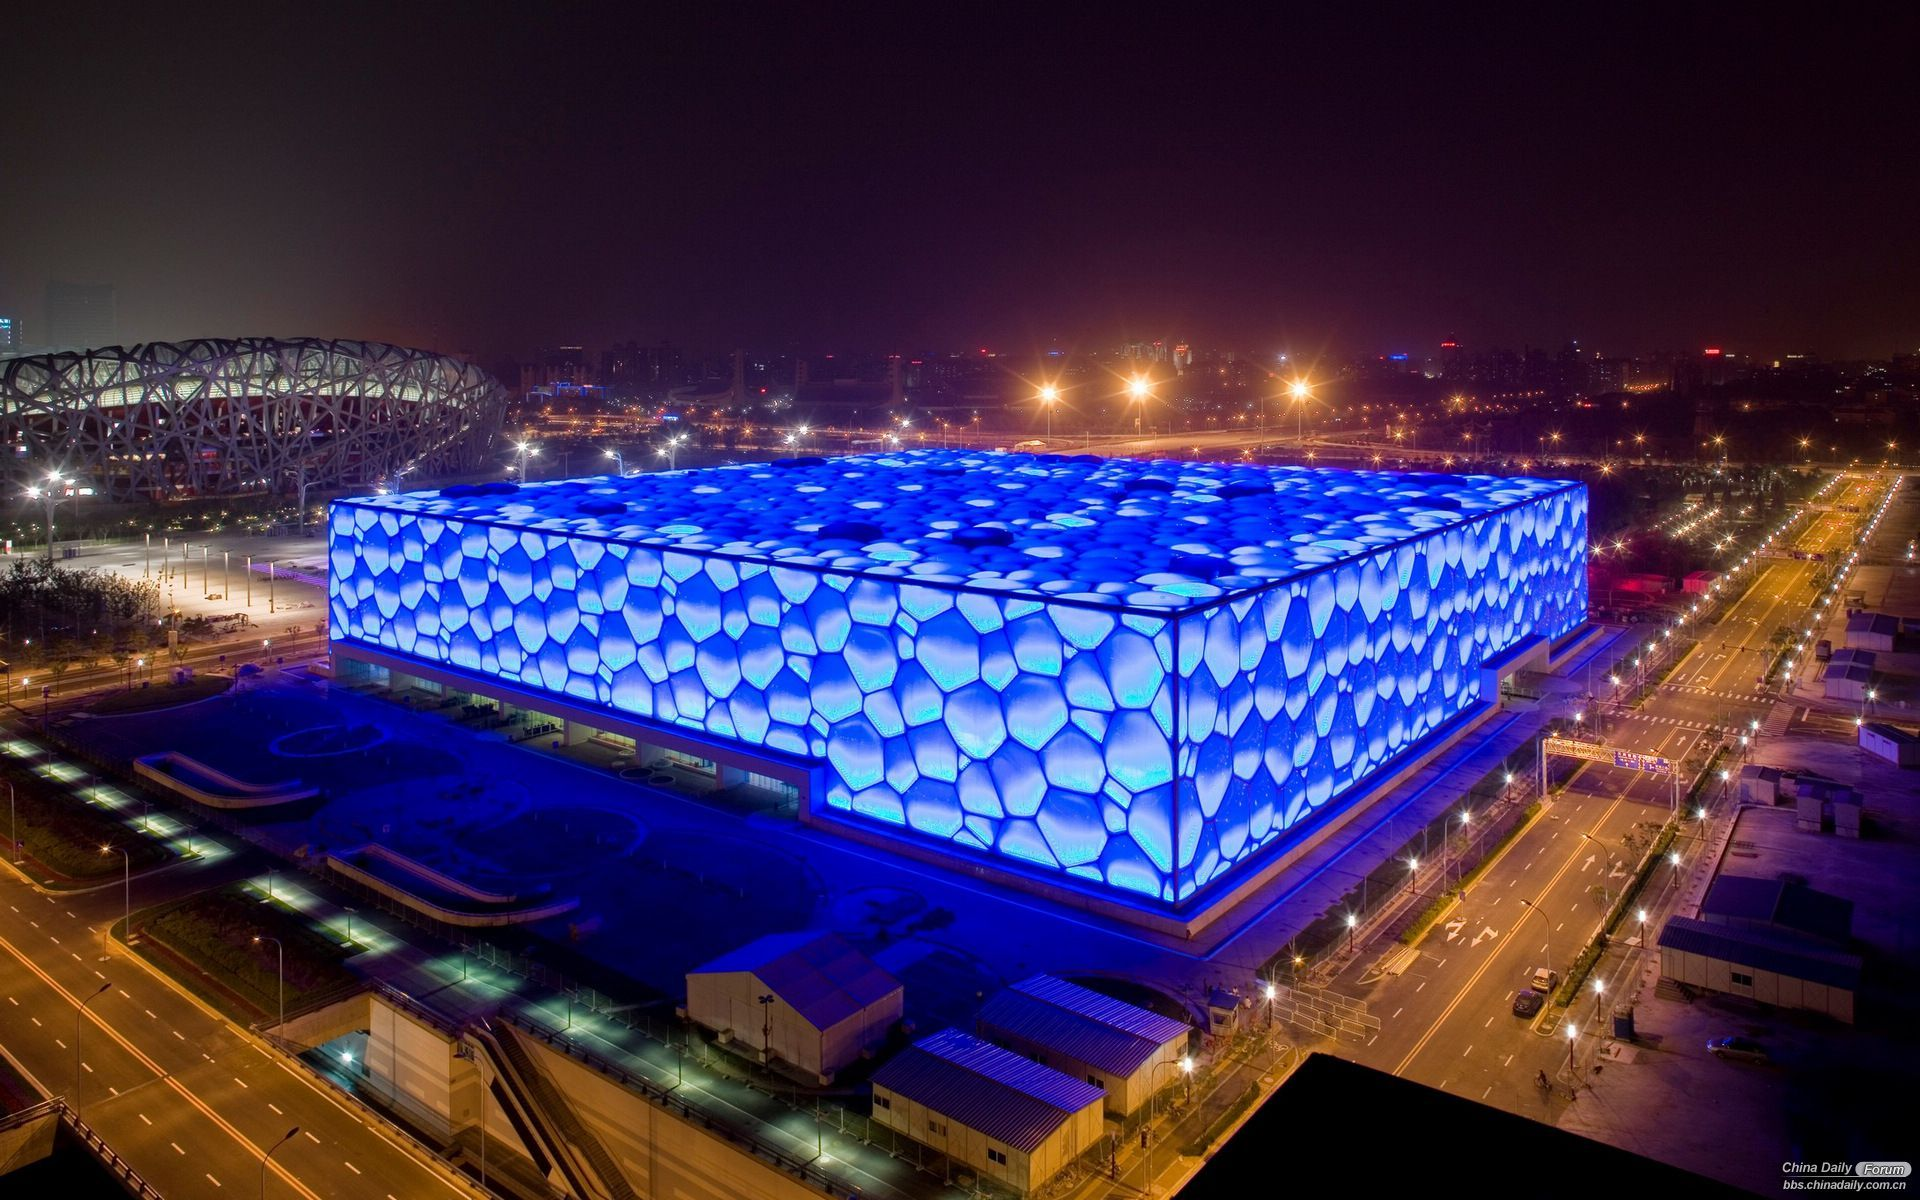 The National Aquatics Center Also Known As The 39 Water Cube 39 Was One Of The Most Dramatic And